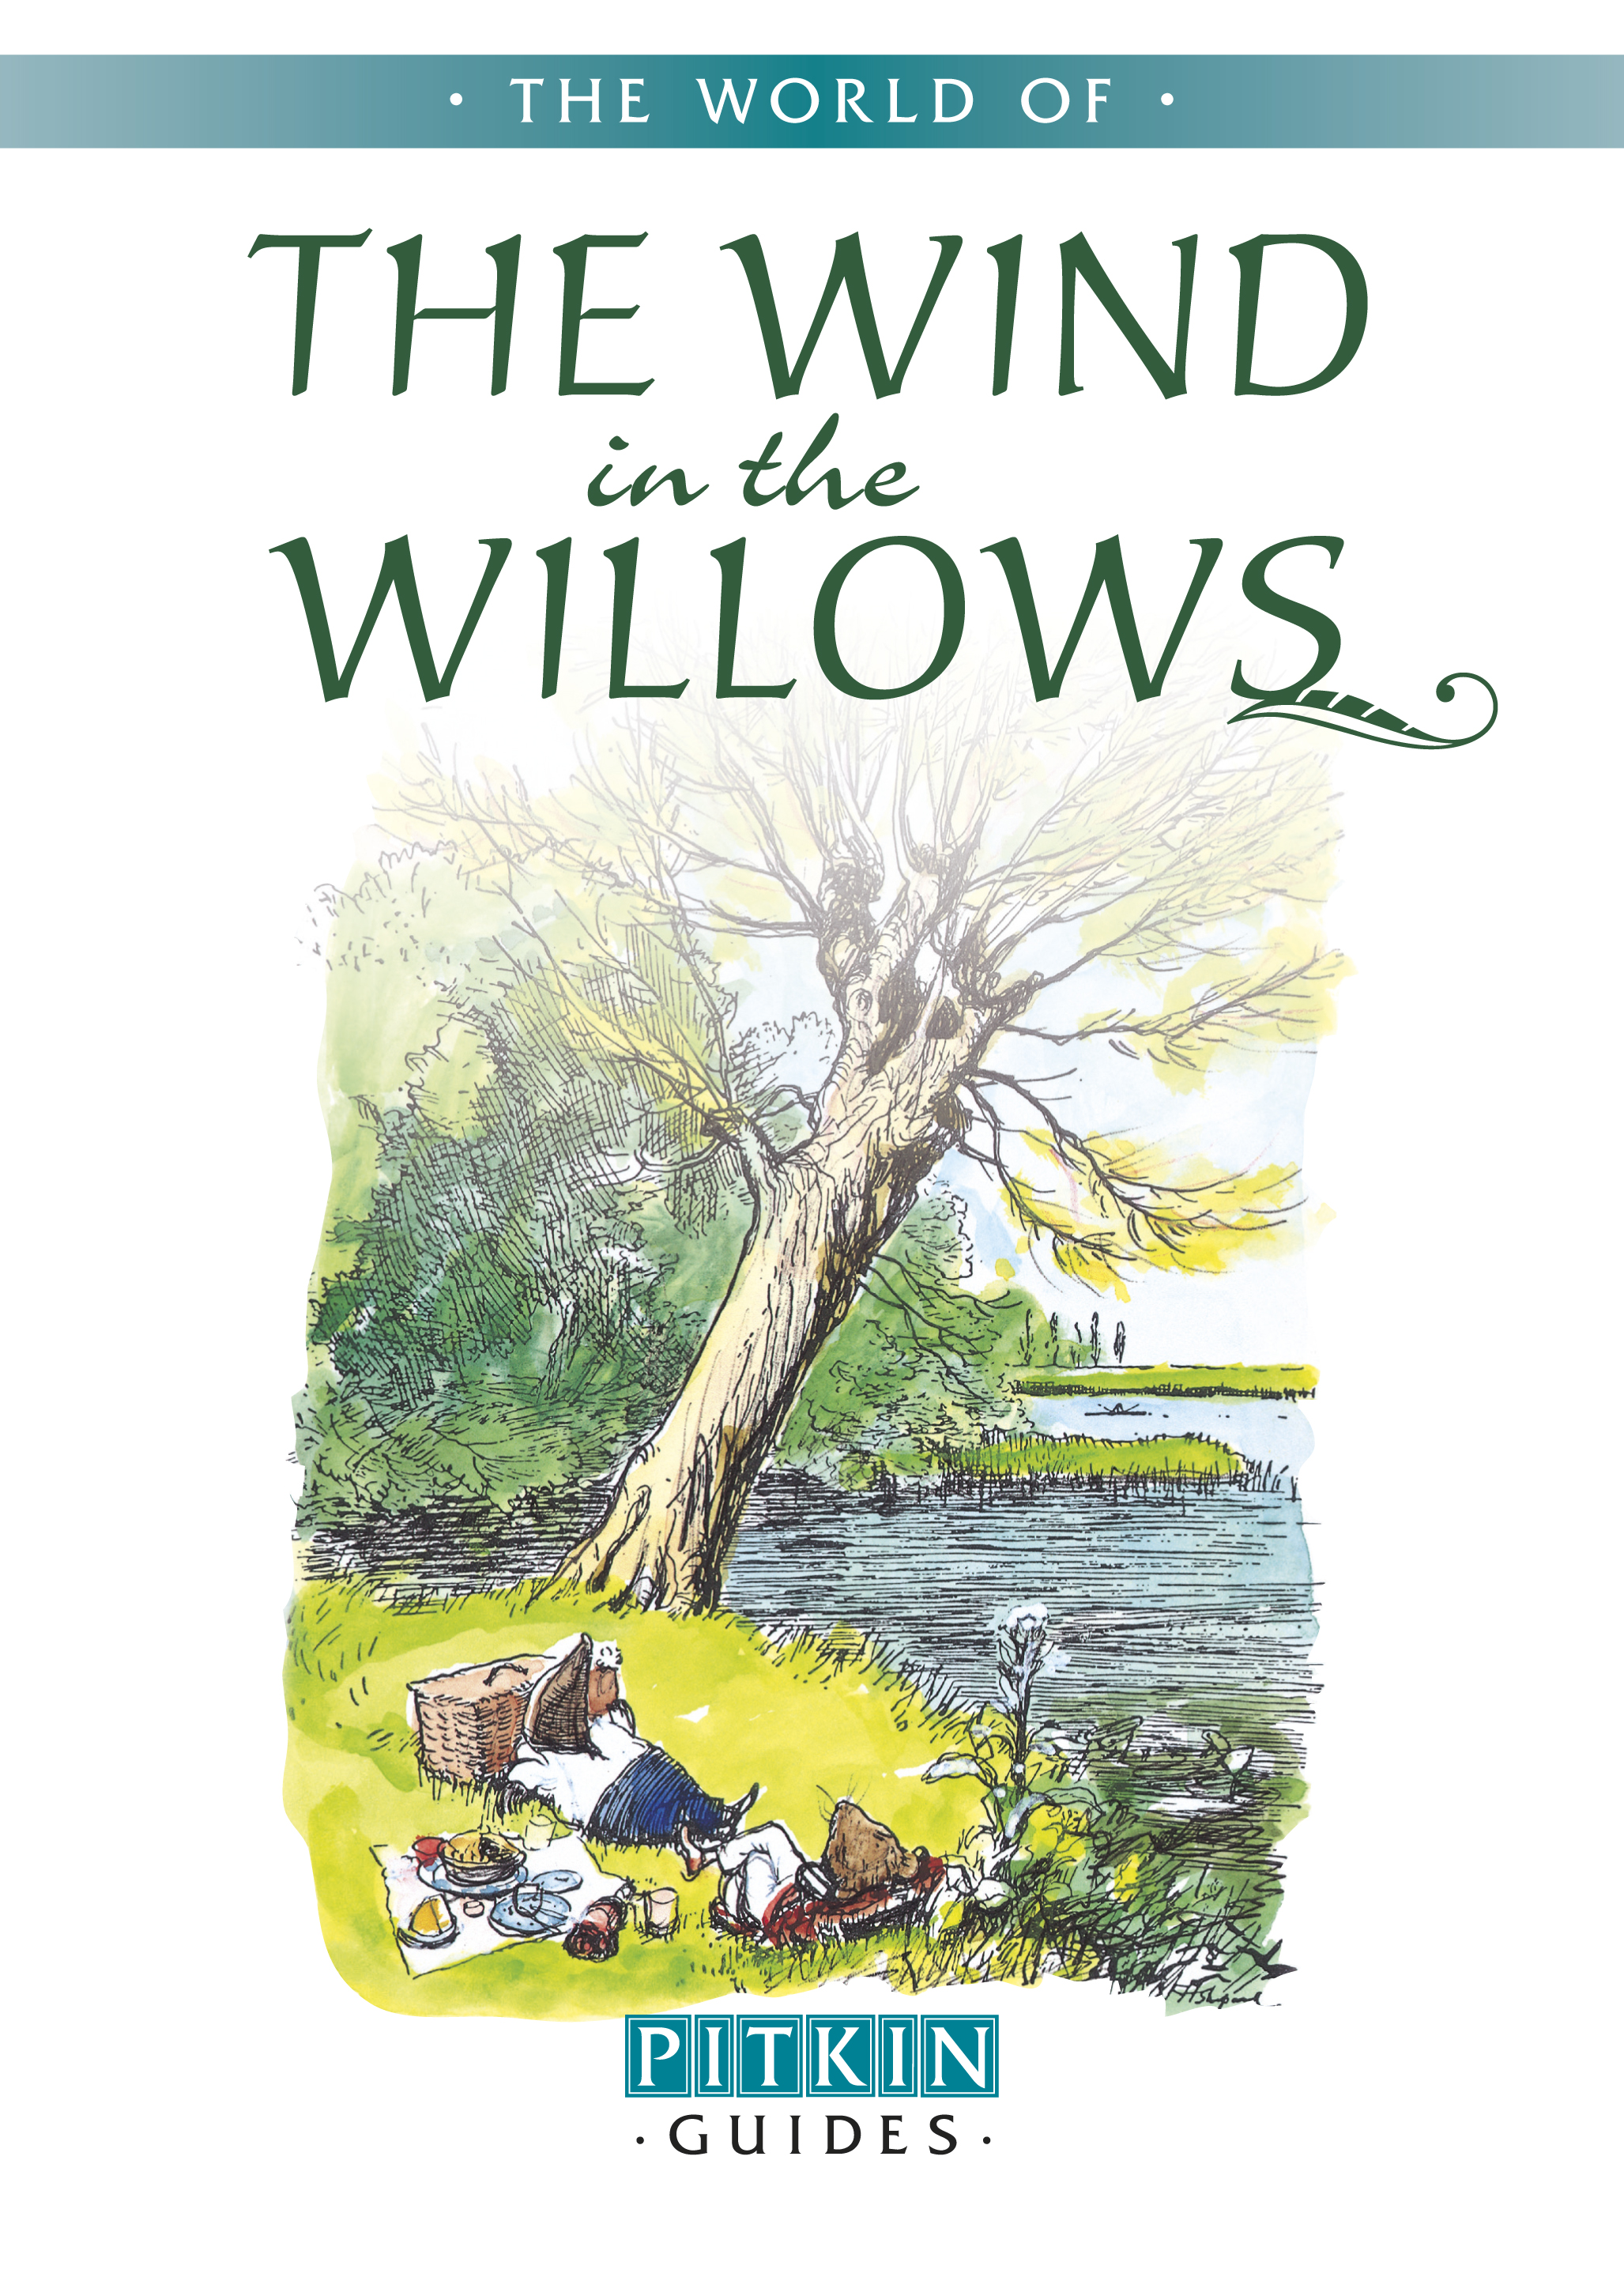 The World of The Wind in the Willows